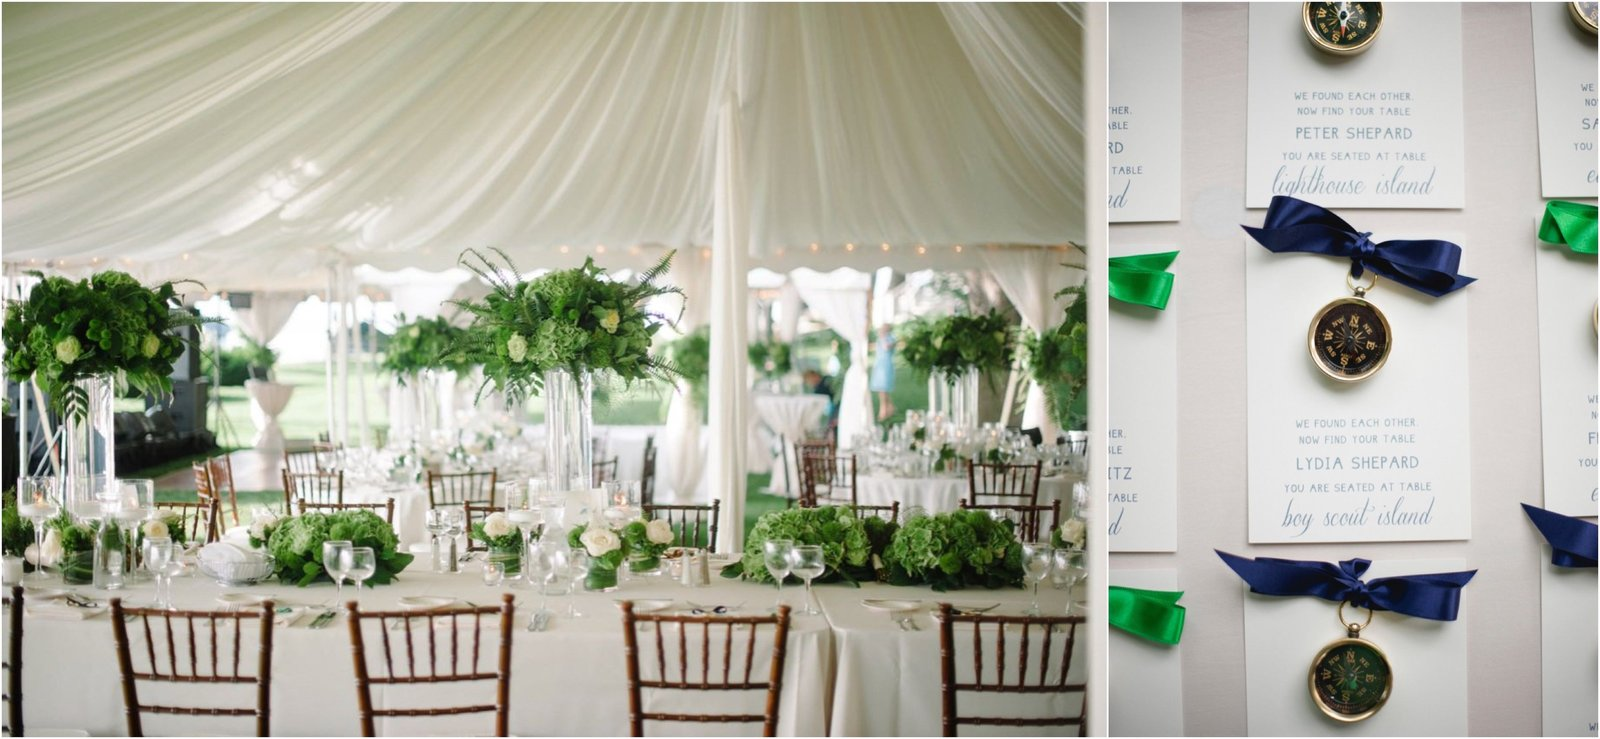 Outdoor tent wedding on Lake Minnetonka